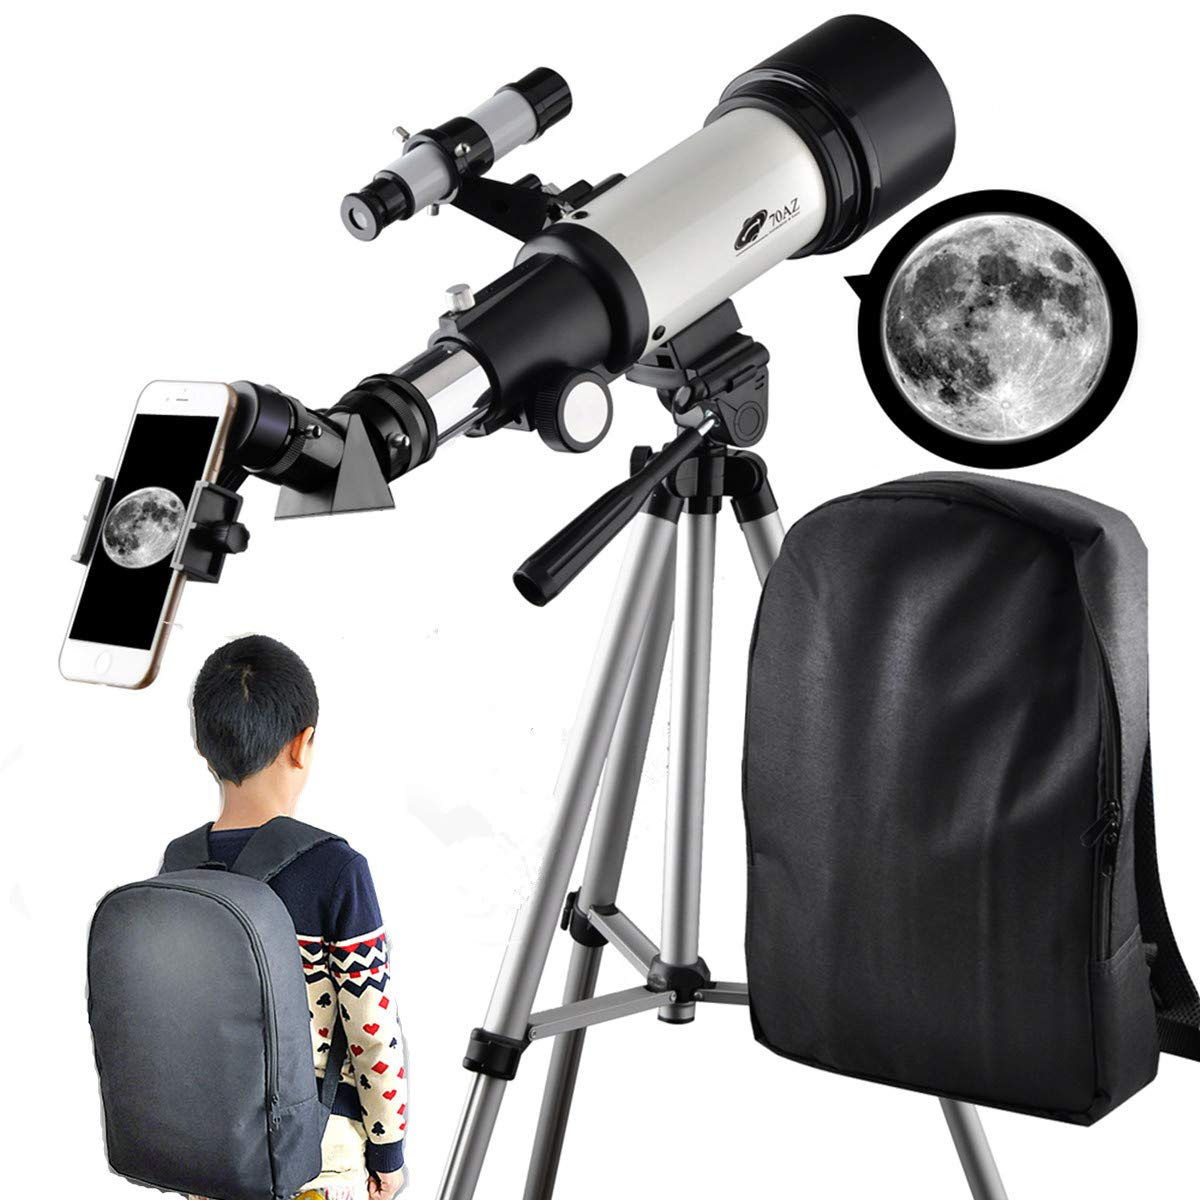 Telescope for Kids 70mm Apeture Travel Scope 400mm AZ Mount - Good Partner to View Moon and Planet - Good Travel Telescope with Backpack for Kids and Beginners by SOLOMARK